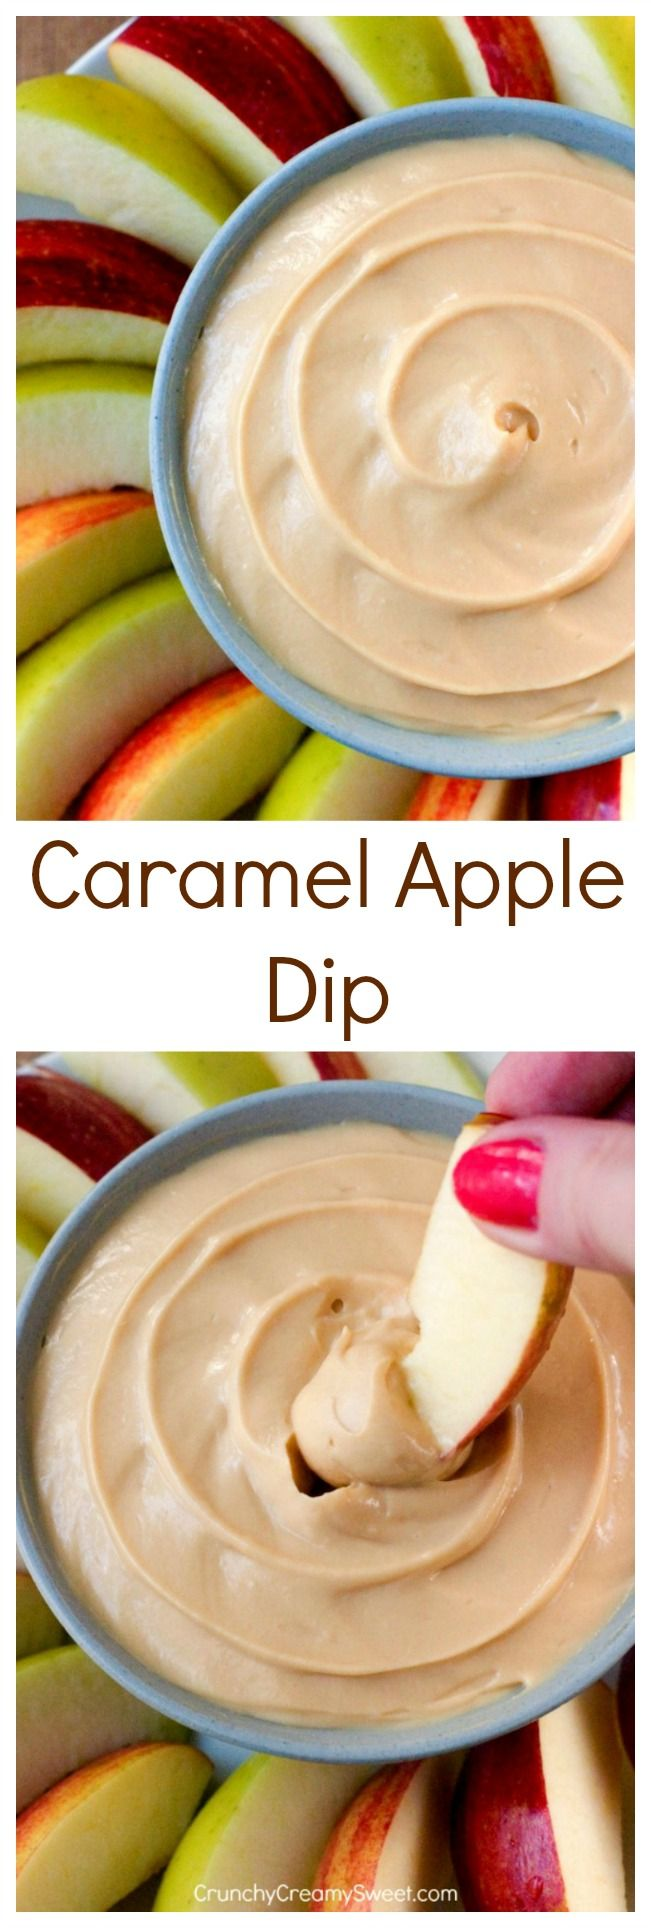 Caramel Apple Dip - this 2-ingredient dip will quickly become your guilty pleasure. It's easy and addicting! Whip it up in just minutes and enjoy with apple slices!